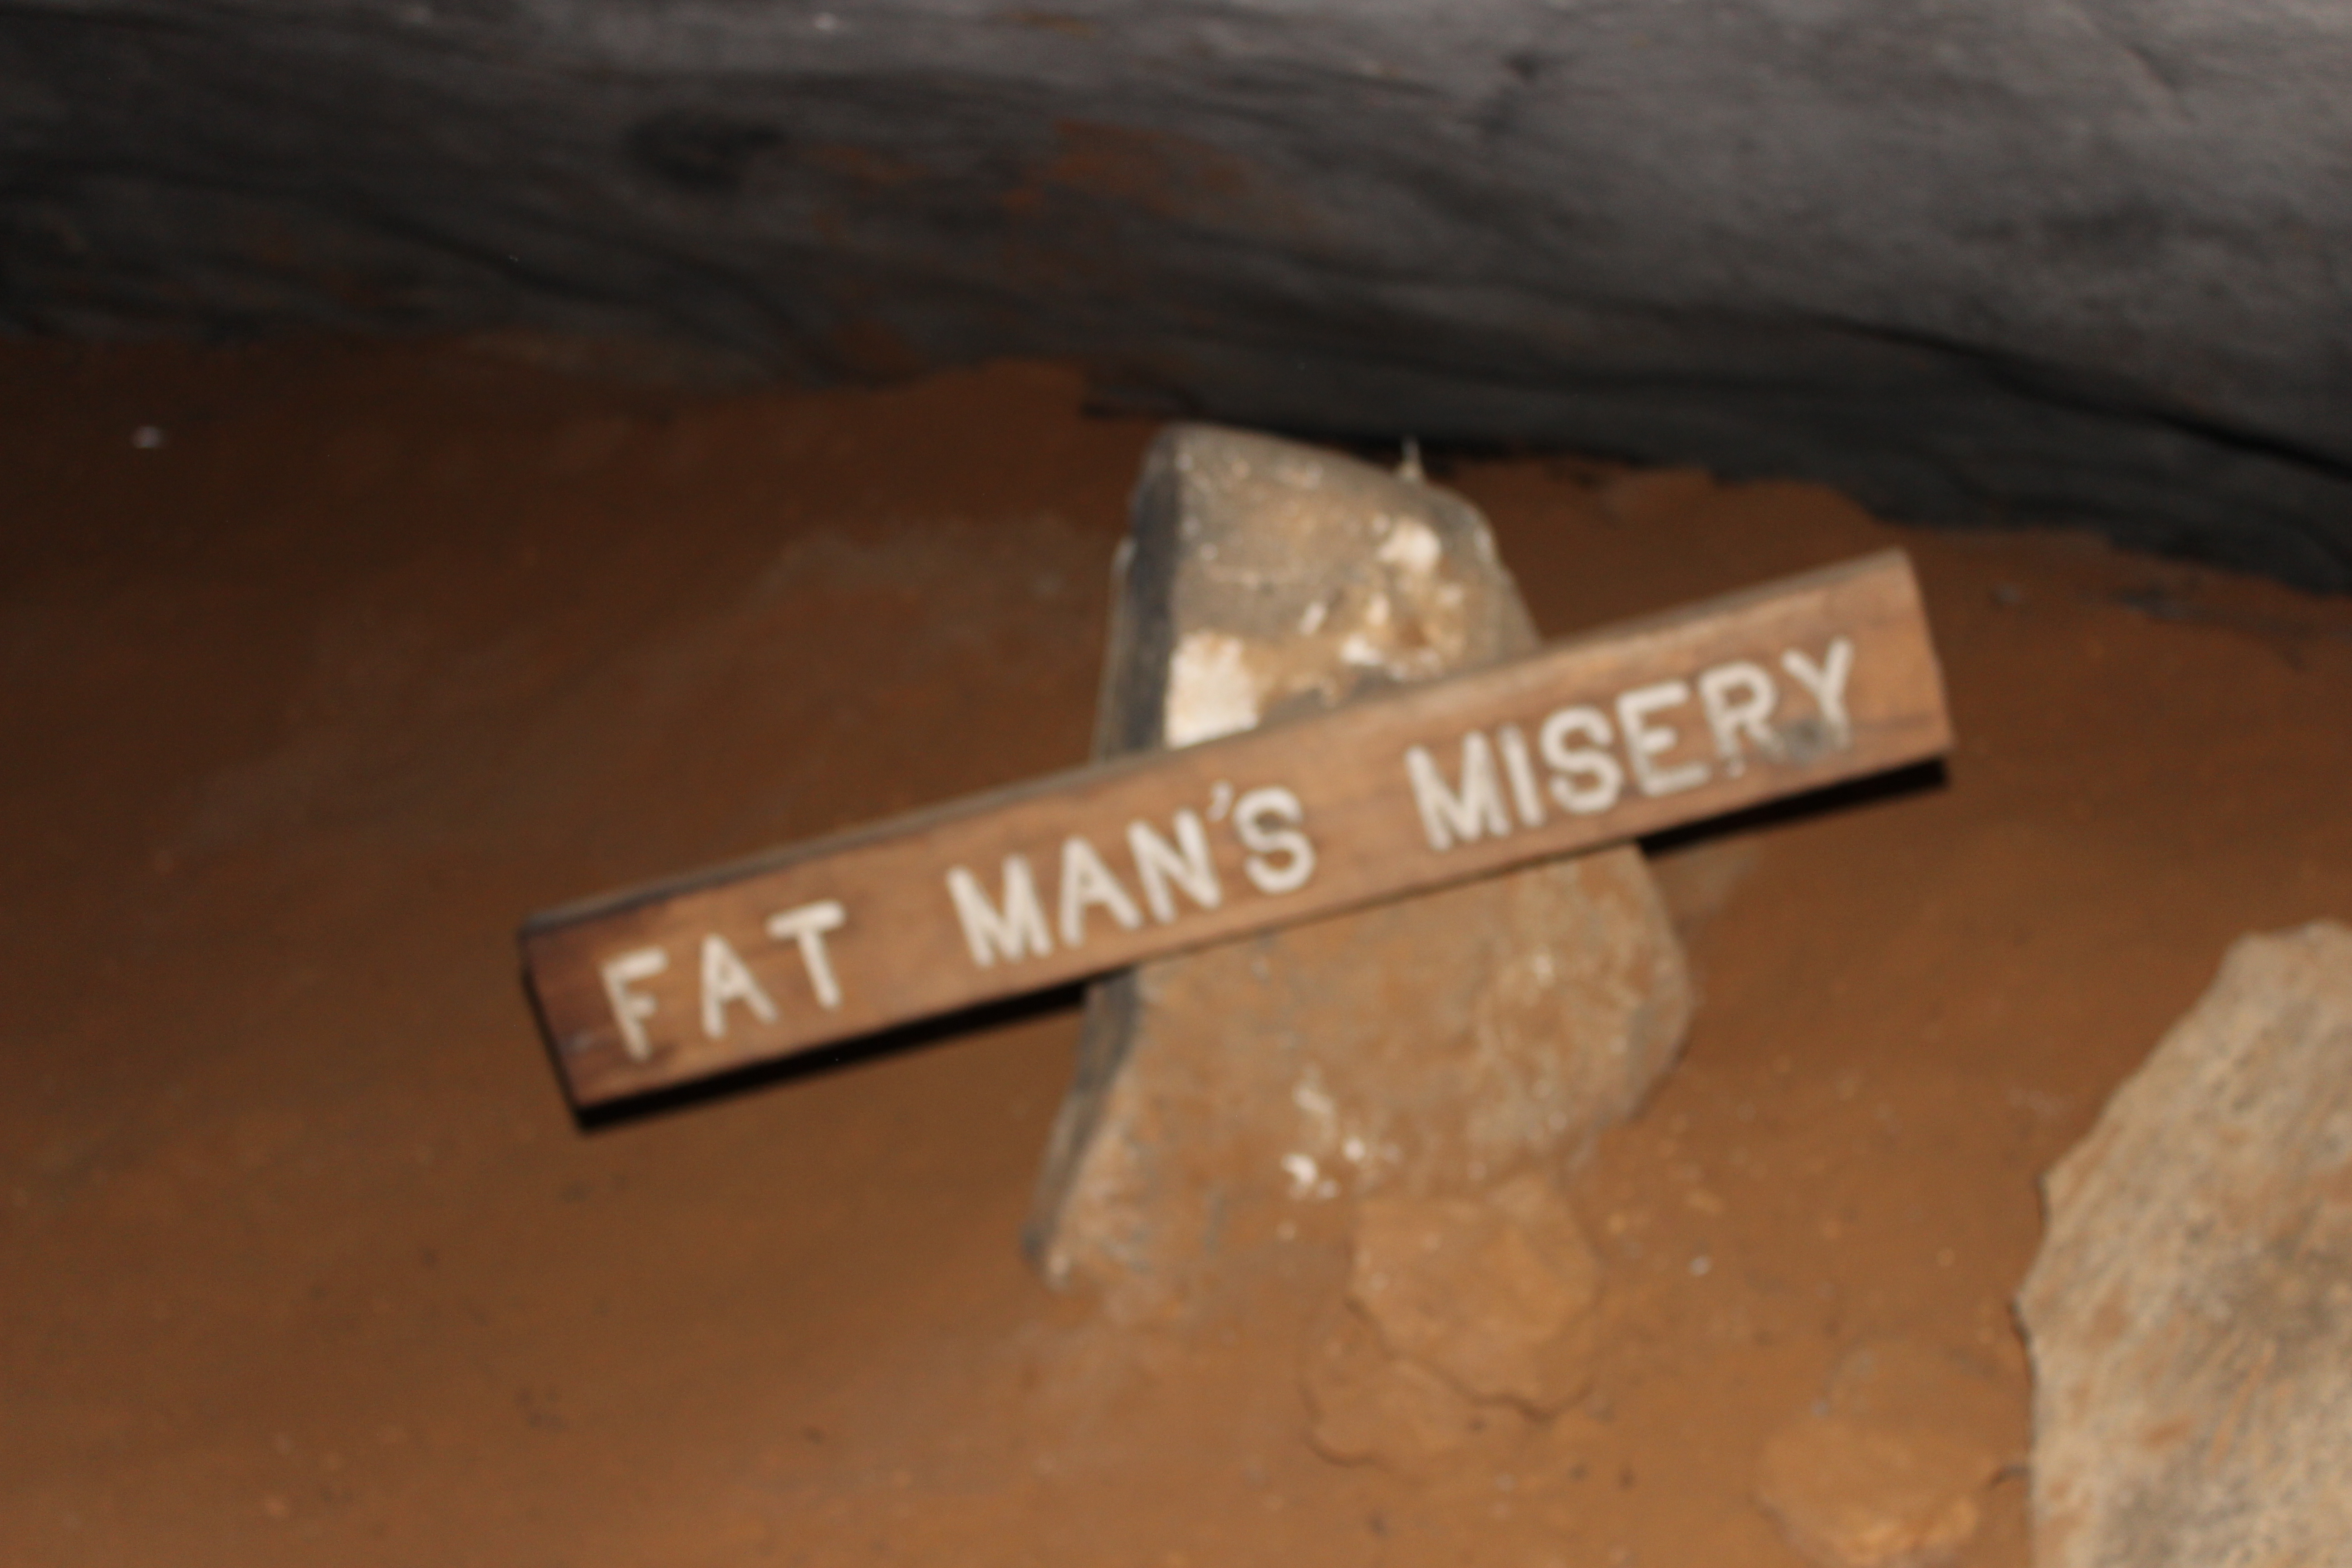 Man Cave Nicknames : Caving in the hamster and highway